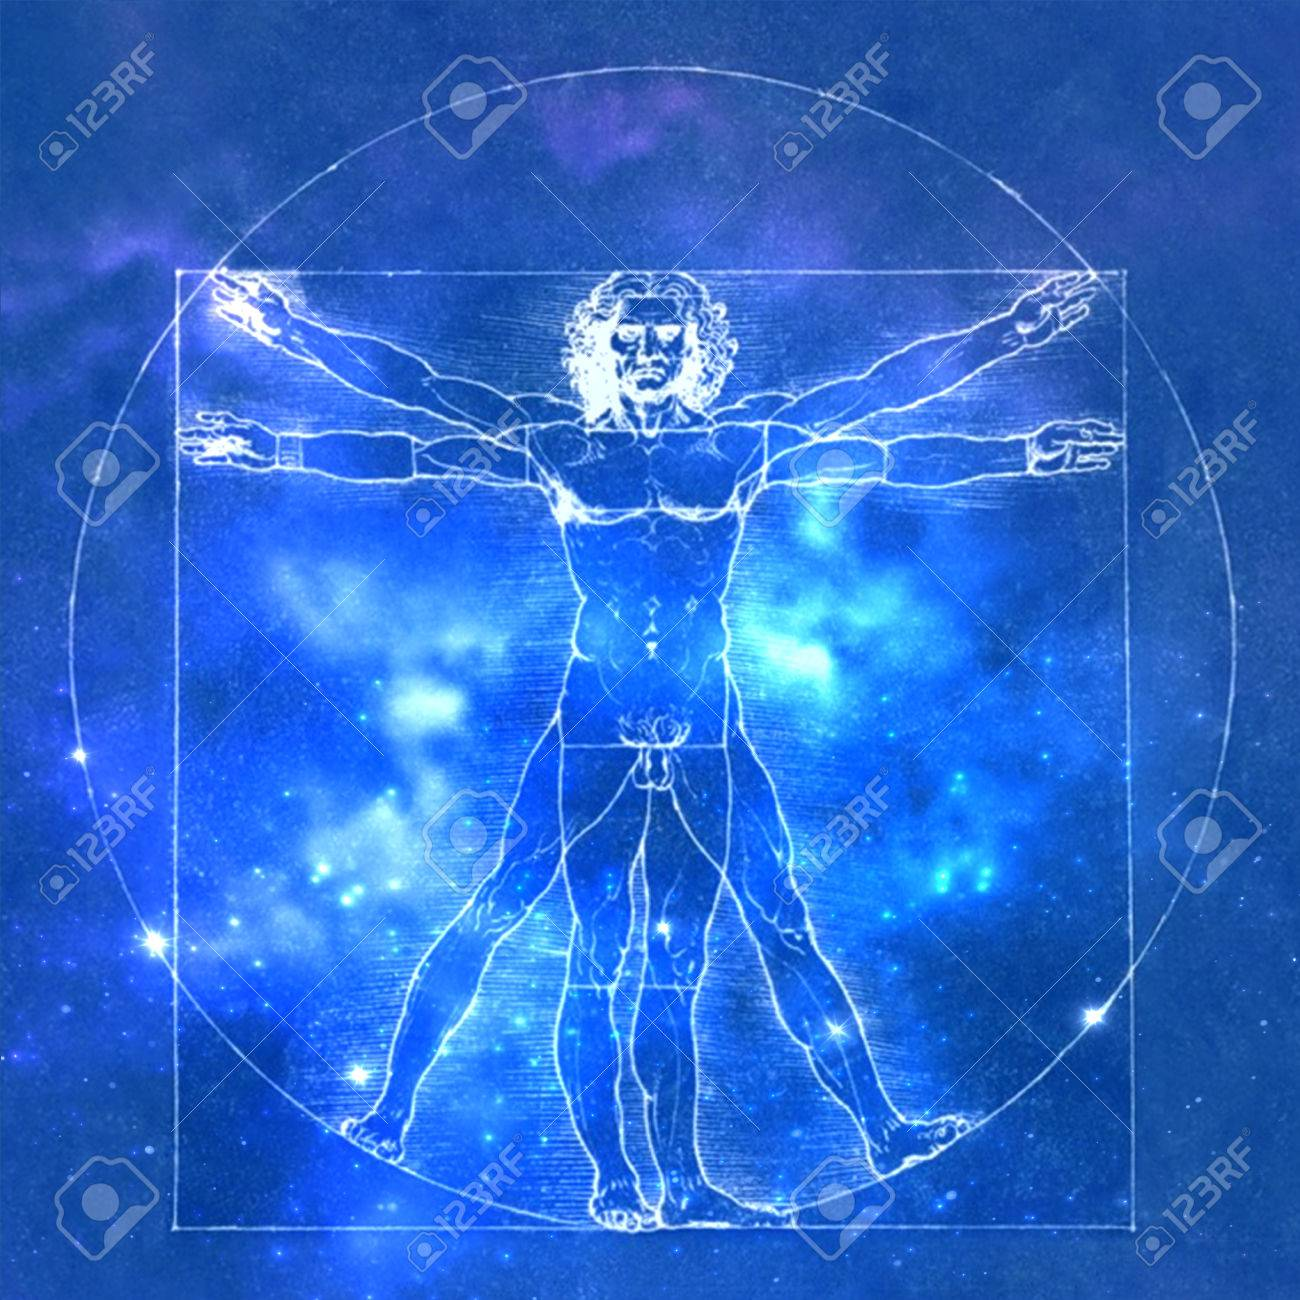 Leonardo Da Vinci Vetruvian Man Human Anatomy Cosmic Background 1300x1300